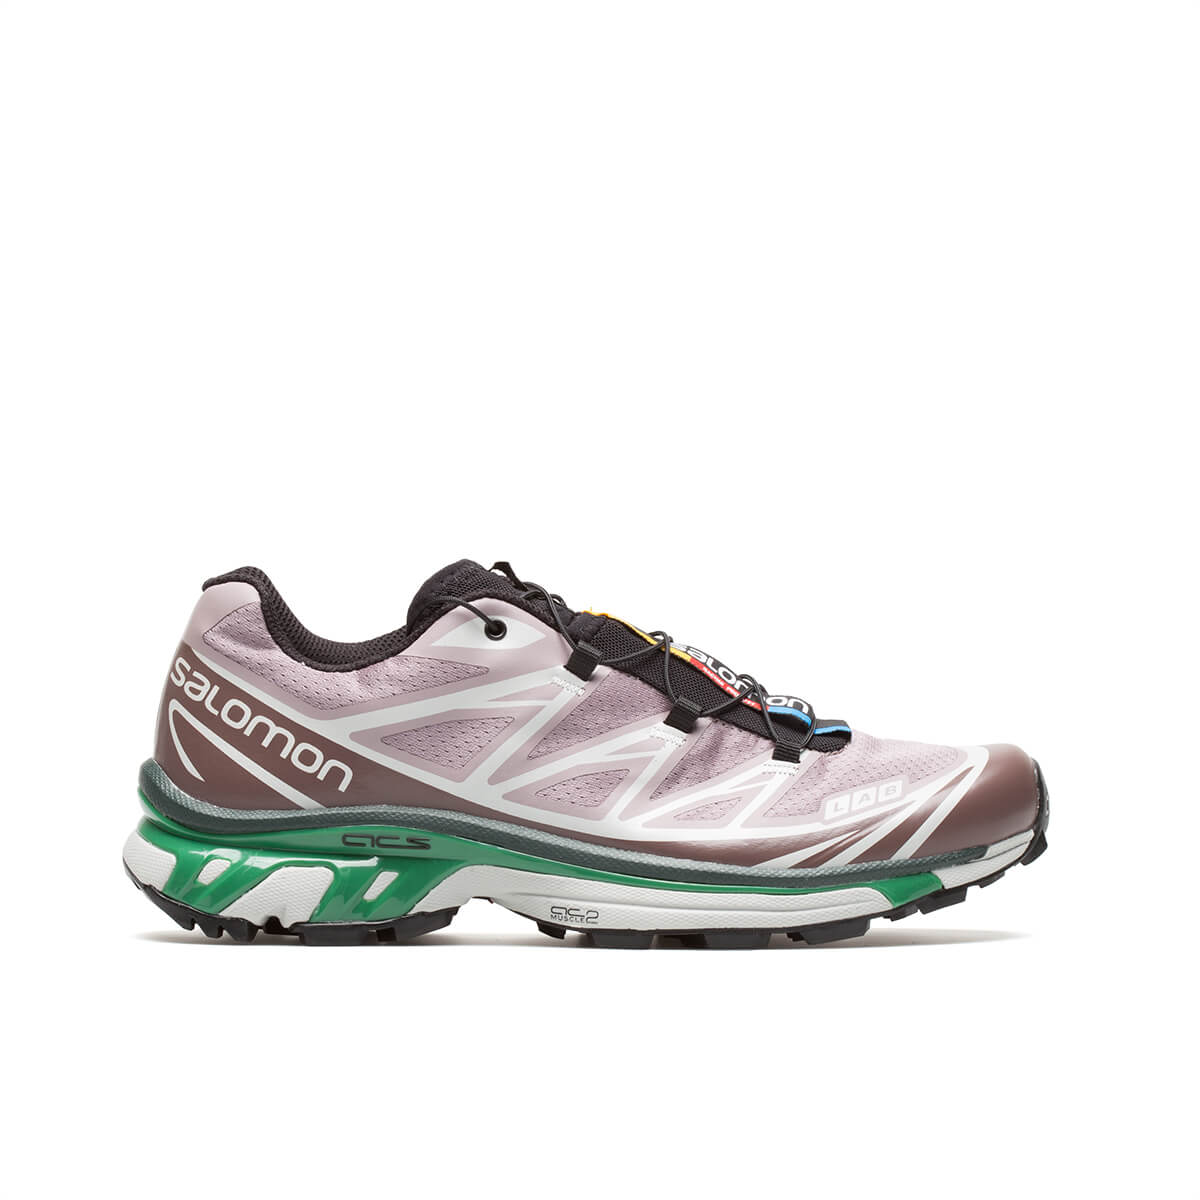 SALOMON LAB XT-6 ADV